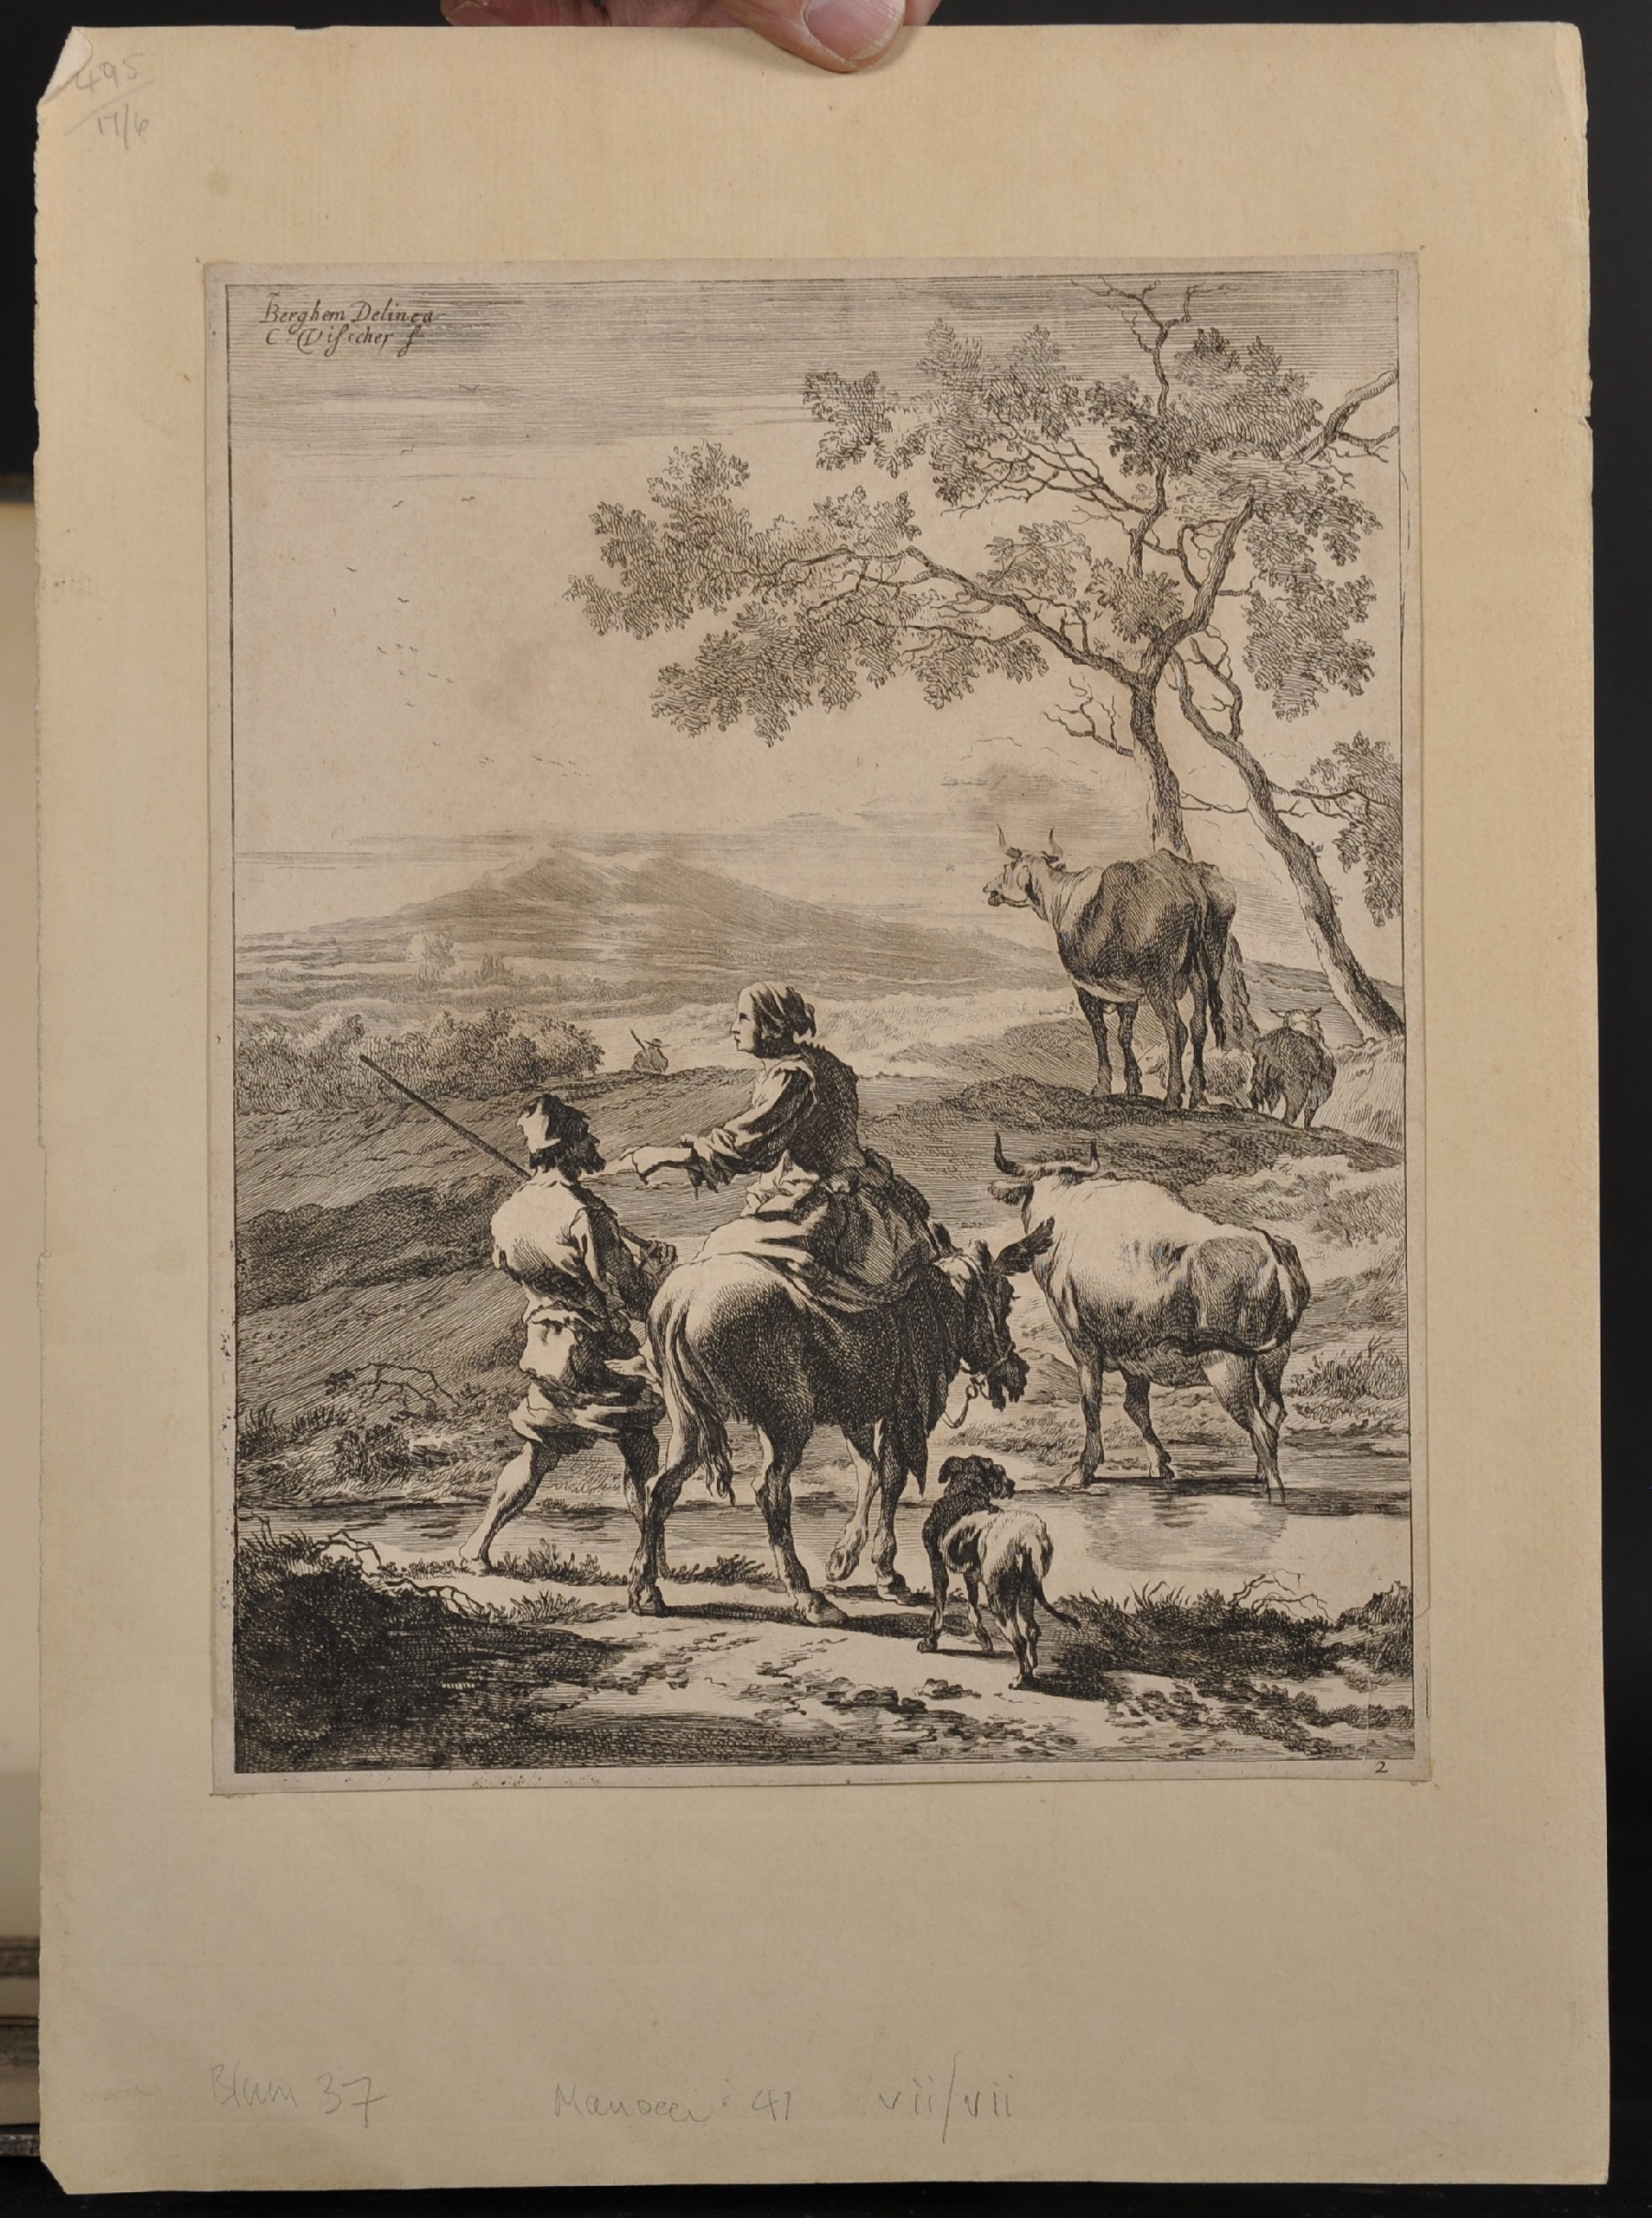 """After Nicholas Berghem (1620-1683) Dutch. Figures on a Path, Engraving, Unframed, 10.25"""" x 8"""", - Image 2 of 5"""